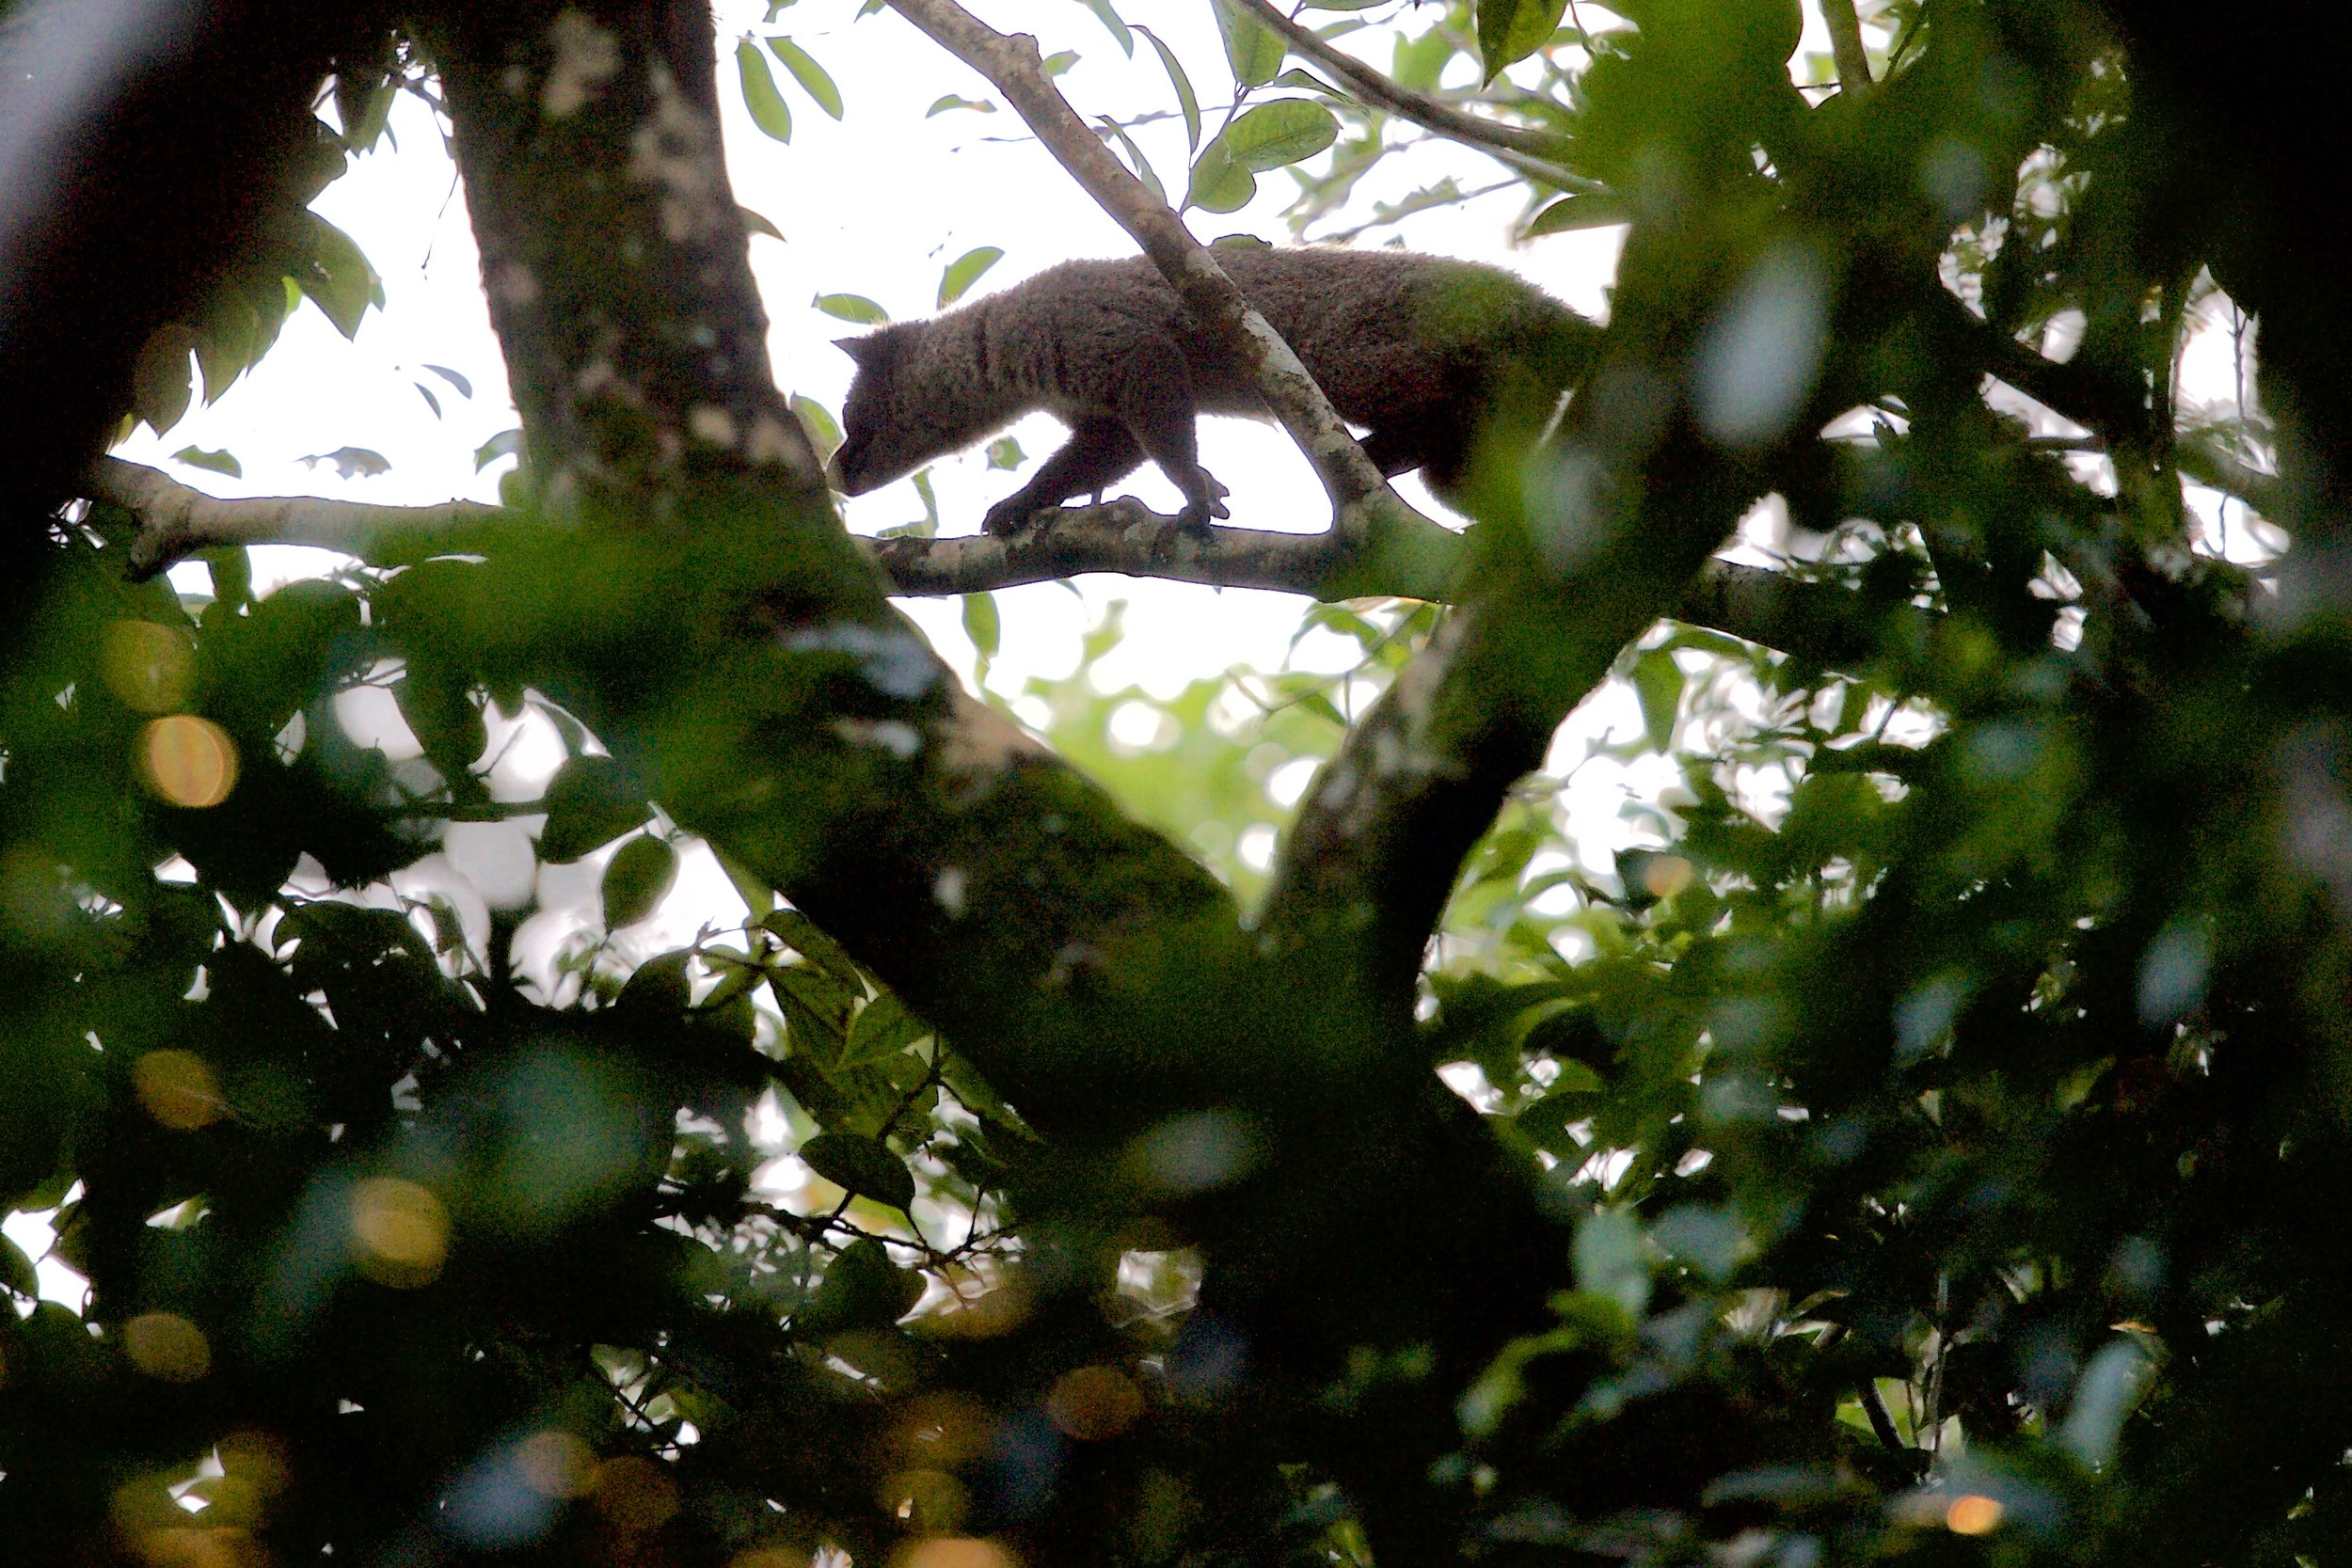 An extremely rare flat-headed cat in Bako National Park, in Sarawak, Borneo island, Malaysia